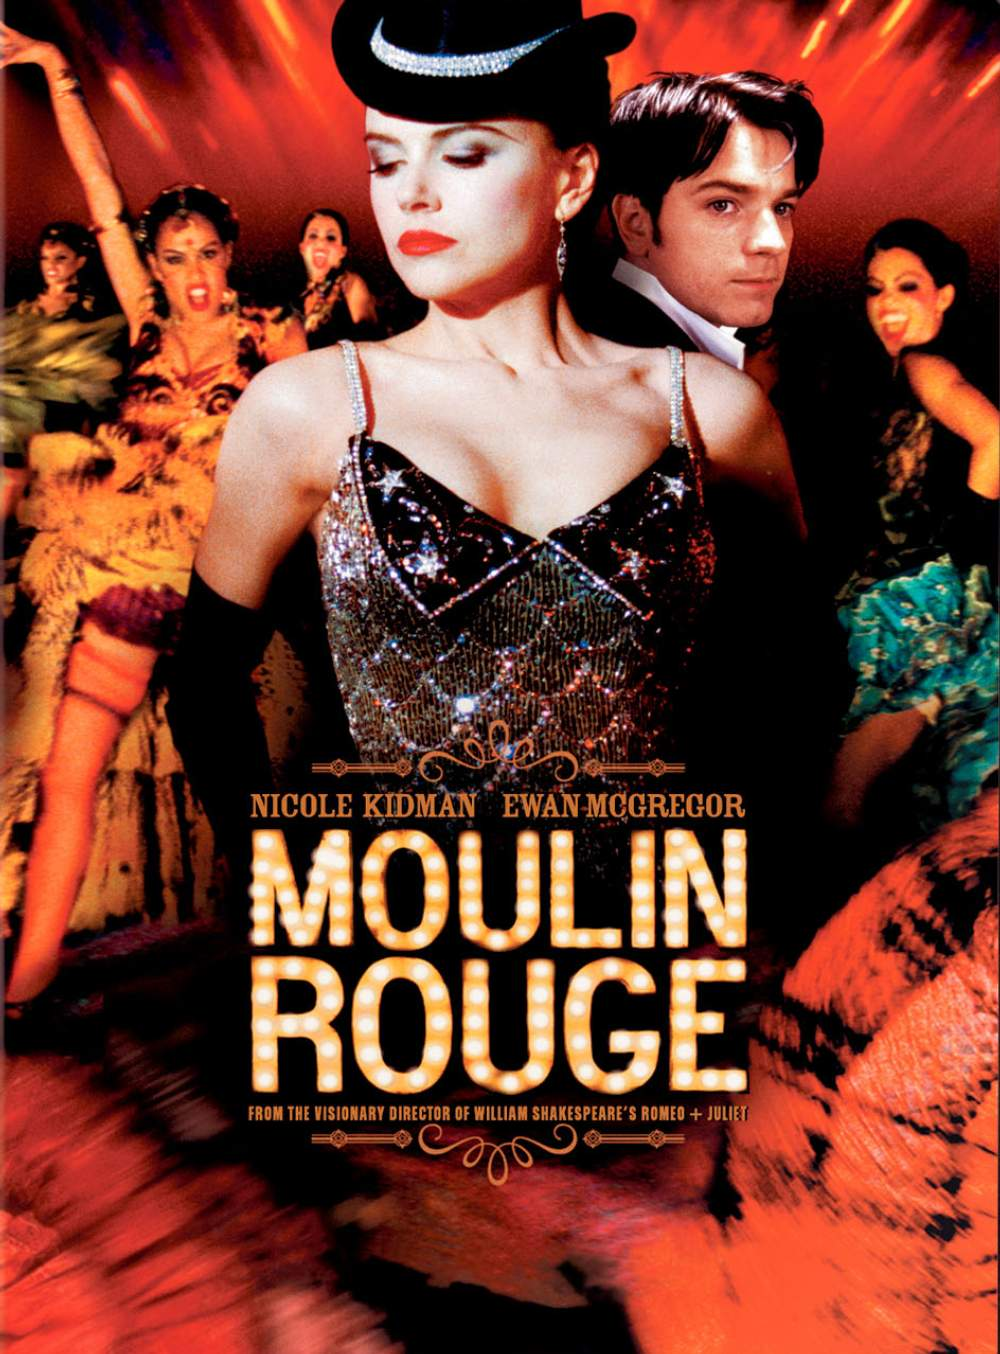 Movies - Moulin Rouge